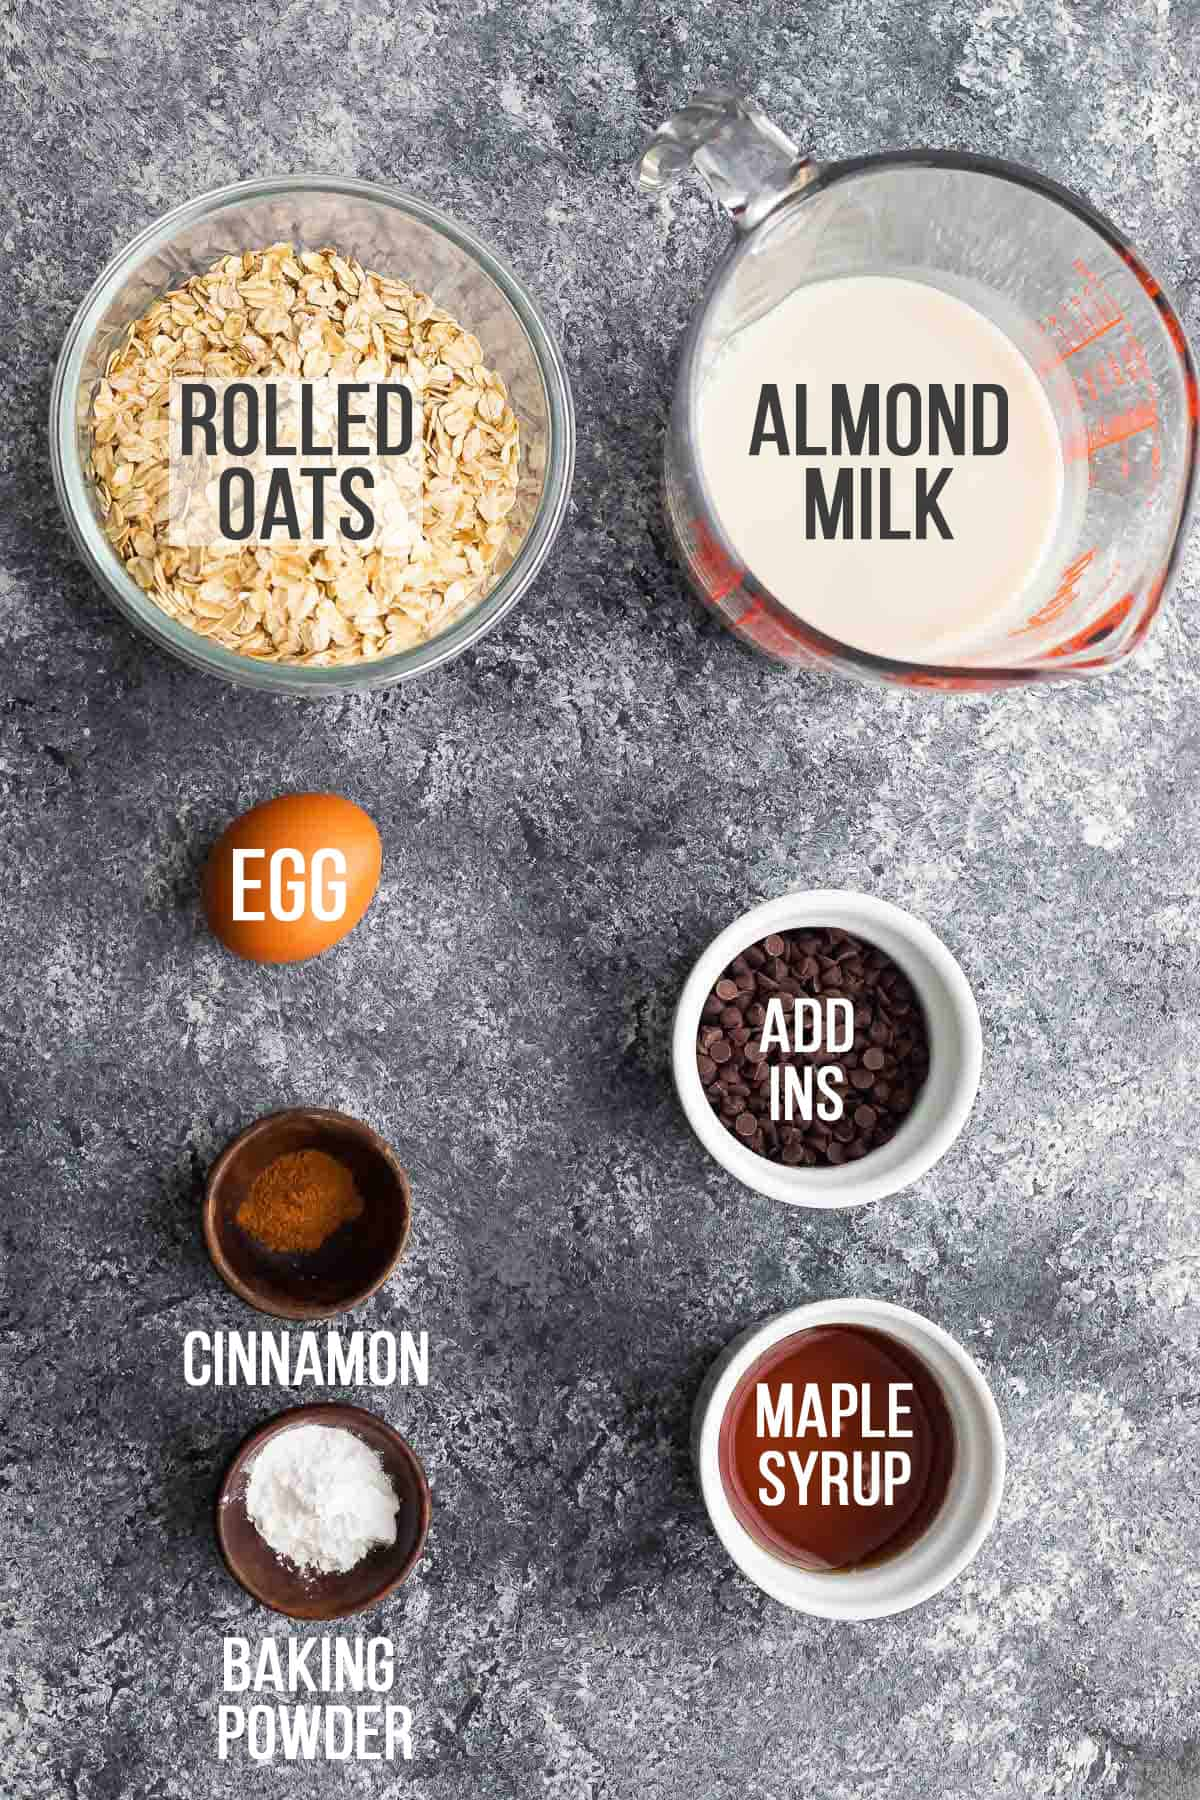 Necessary ingredients for baked oatmeal